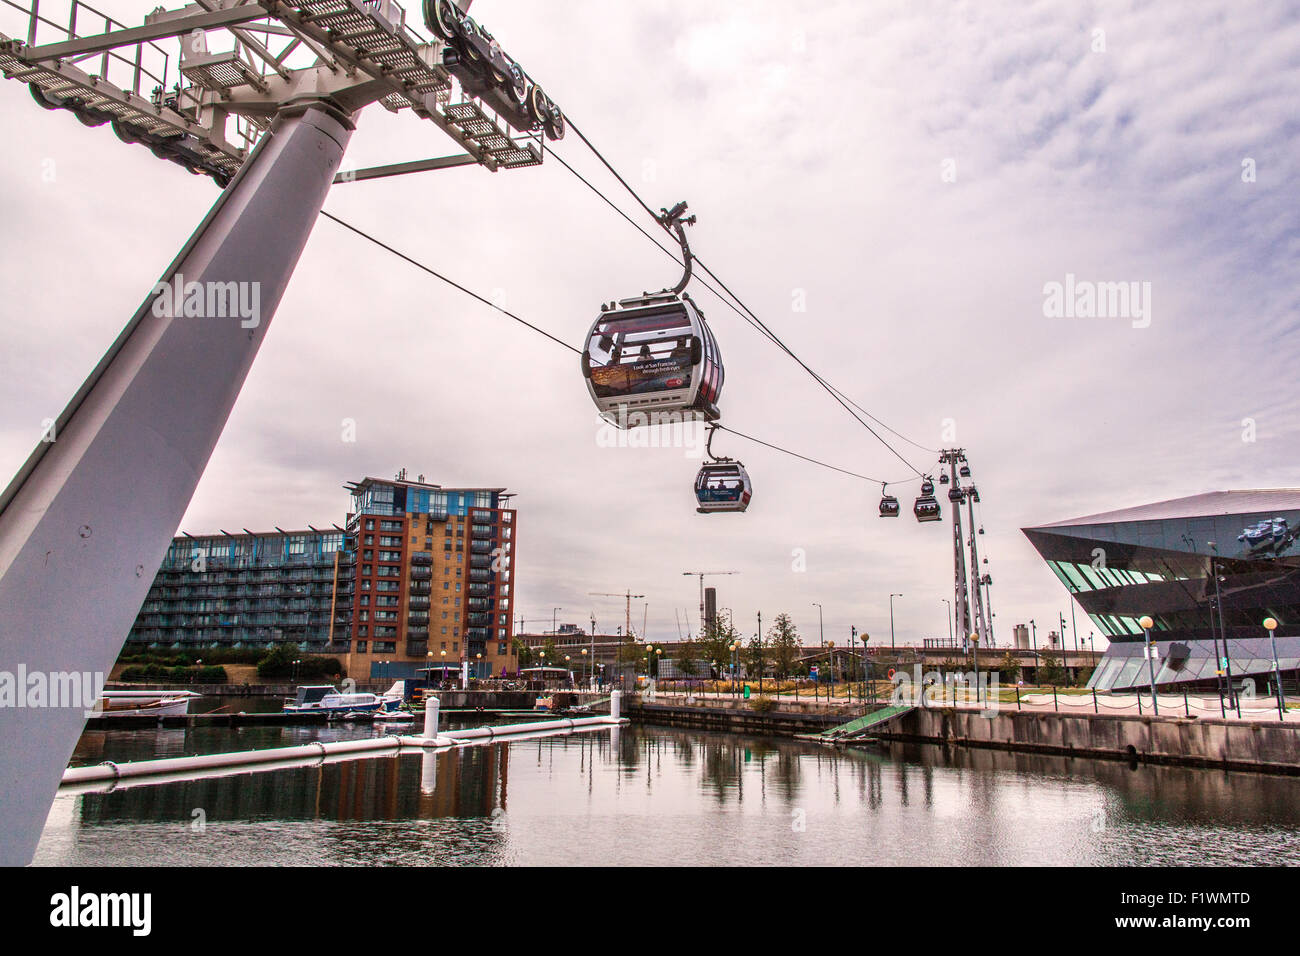 Emirates Air Line cable cars ride across the River Thames from North Greenwich to Royal Victoria Dock, London, England, - Stock Image